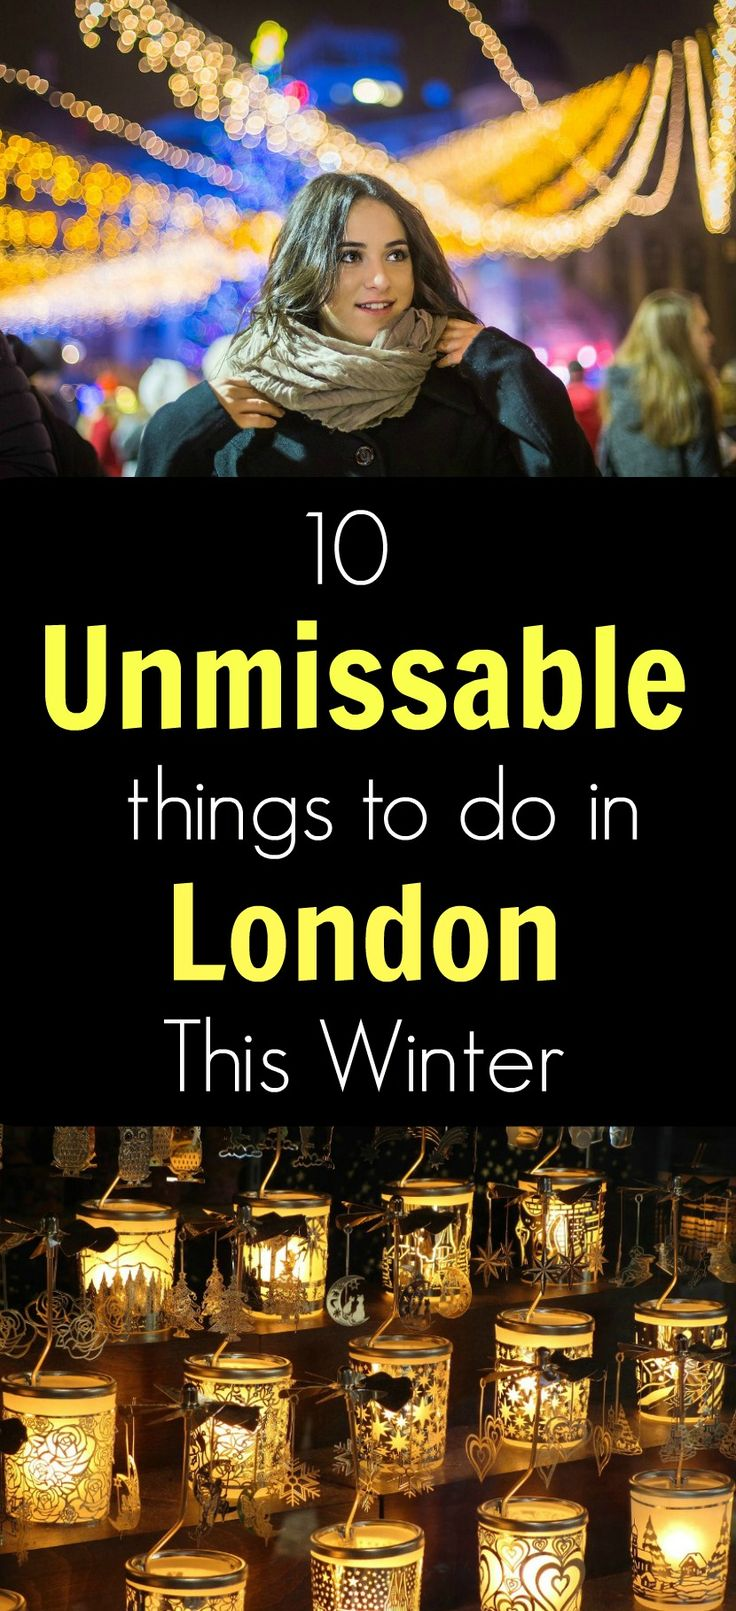 The ultimate guide to the best things to in London for Winter 2016!